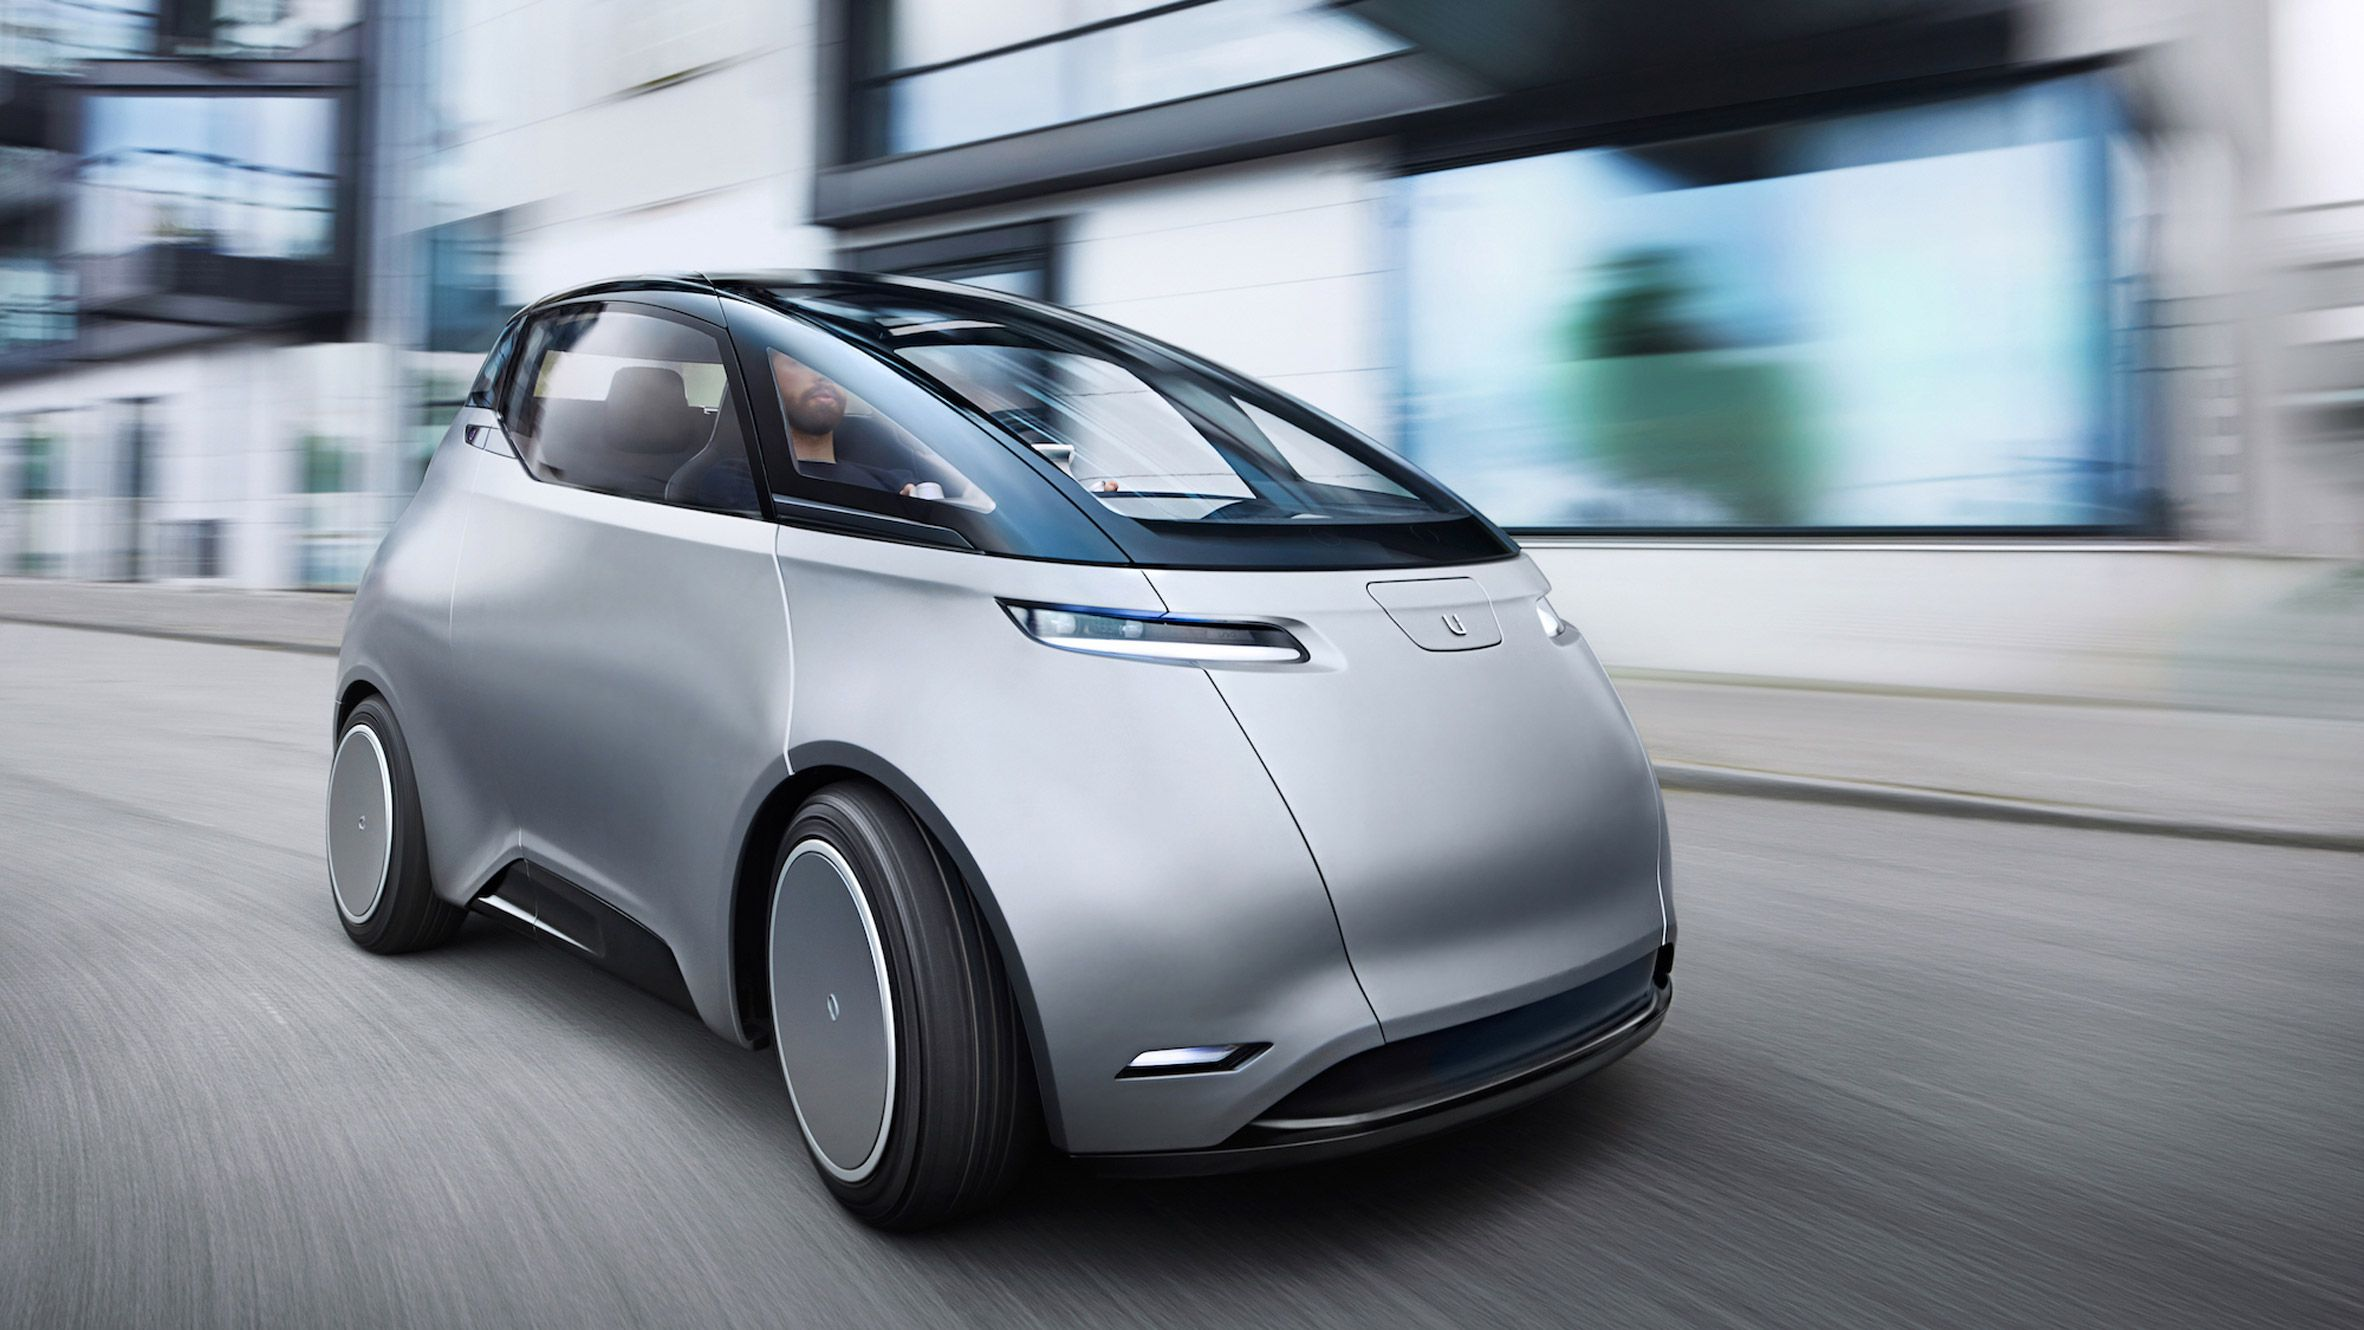 Swedish Automotive Start Up Uniti Marks Its First Vehicle Launch With A Fully Electric And Affordable City Car Which Is Scheduled To Go Into Production